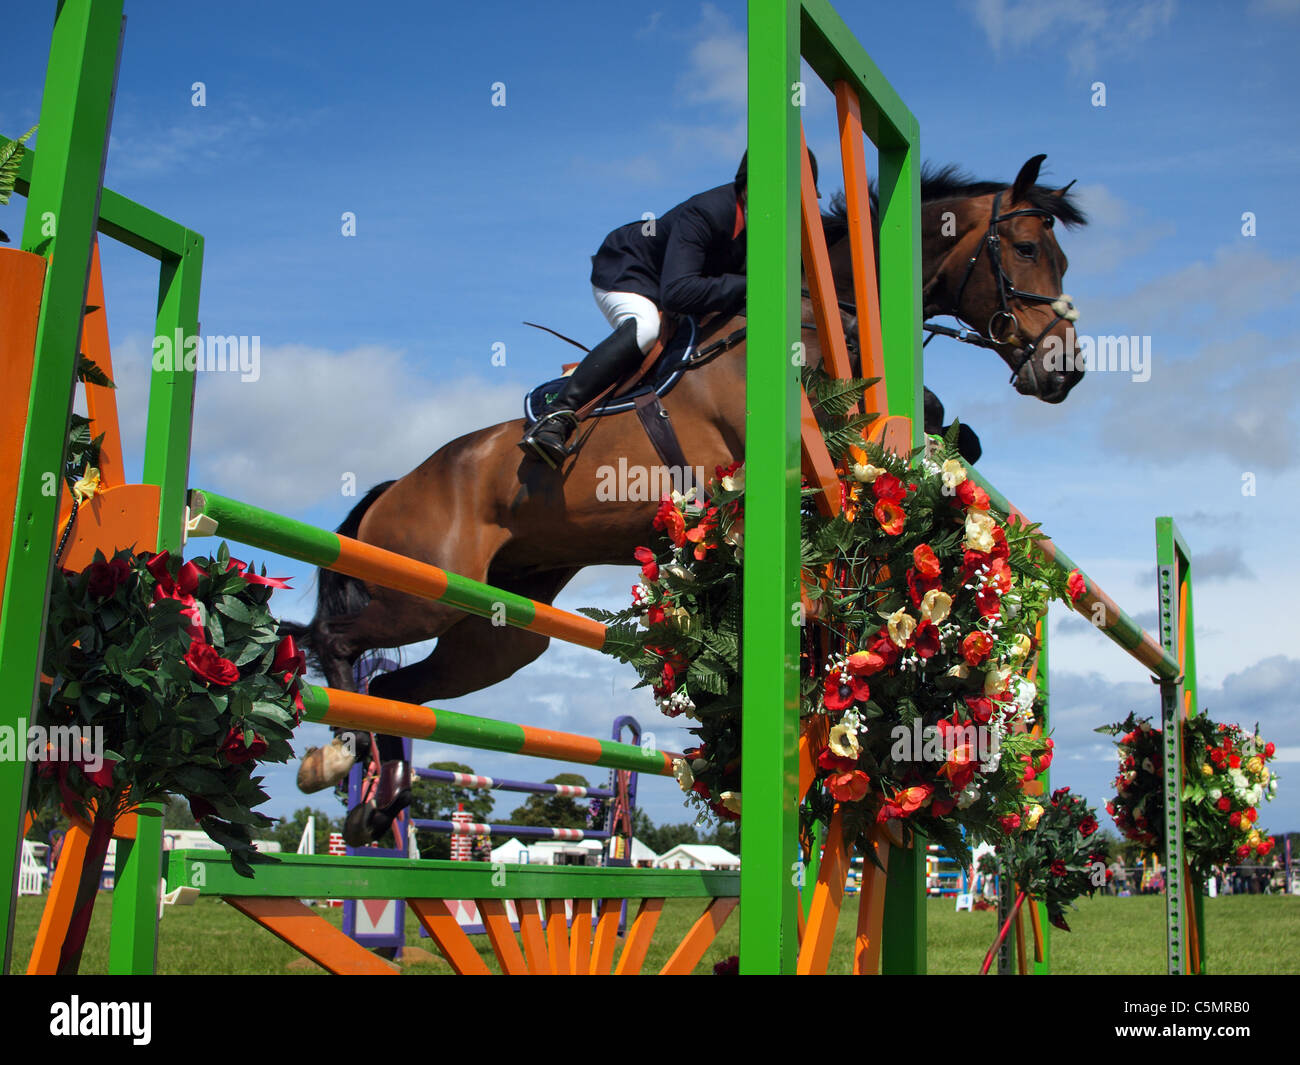 Show jumping at Burgham Horse Trials, Northumberland - Stock Image